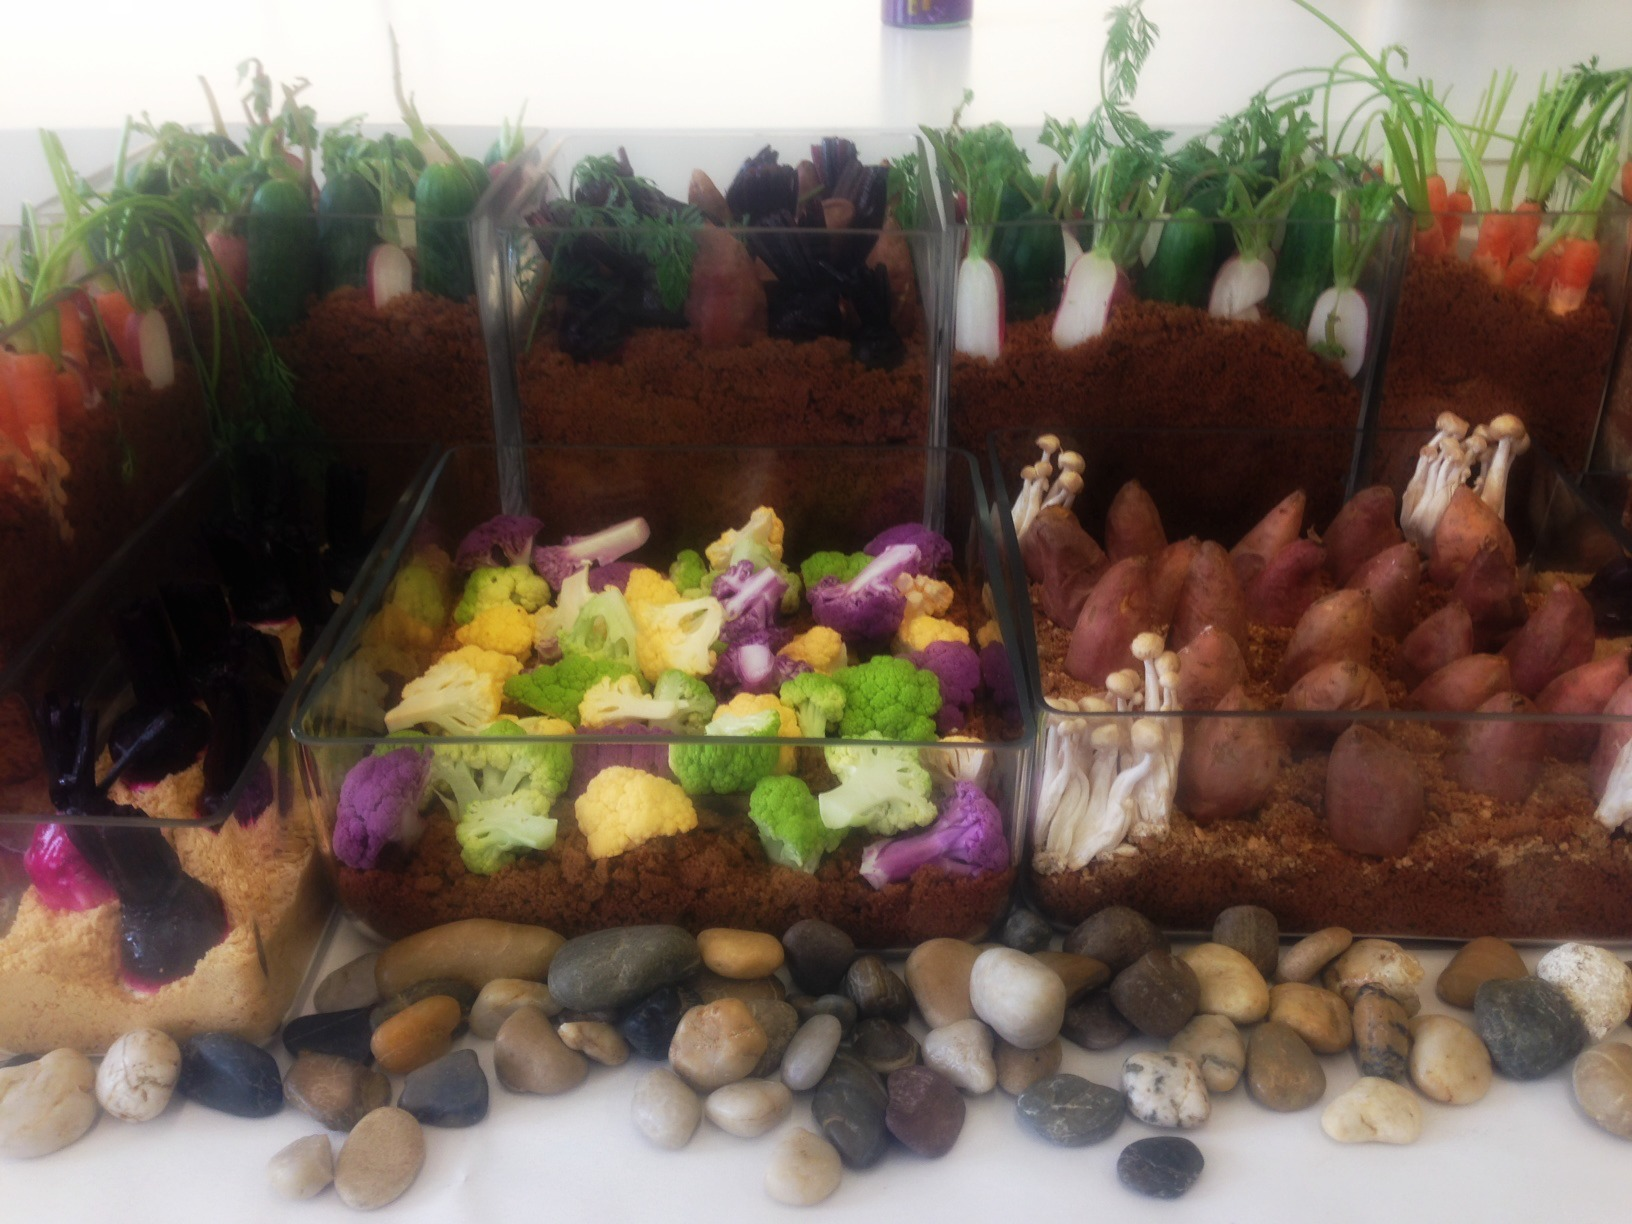 An edible garden, even the dirt - Catering by W&W